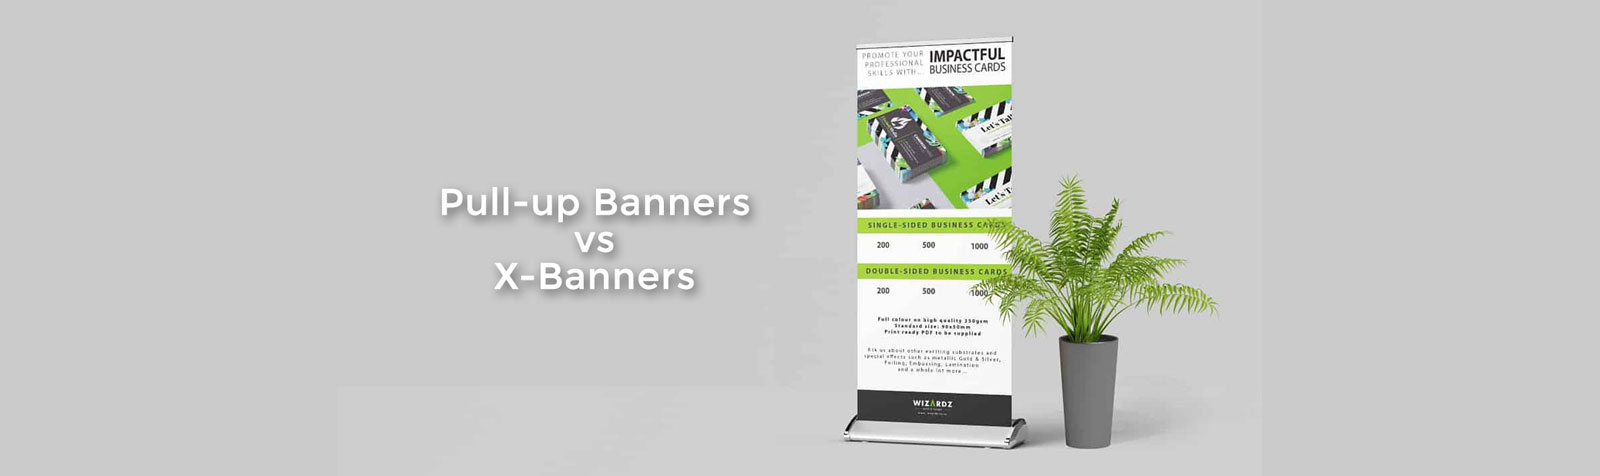 Pull-up Banners vs X-Banners